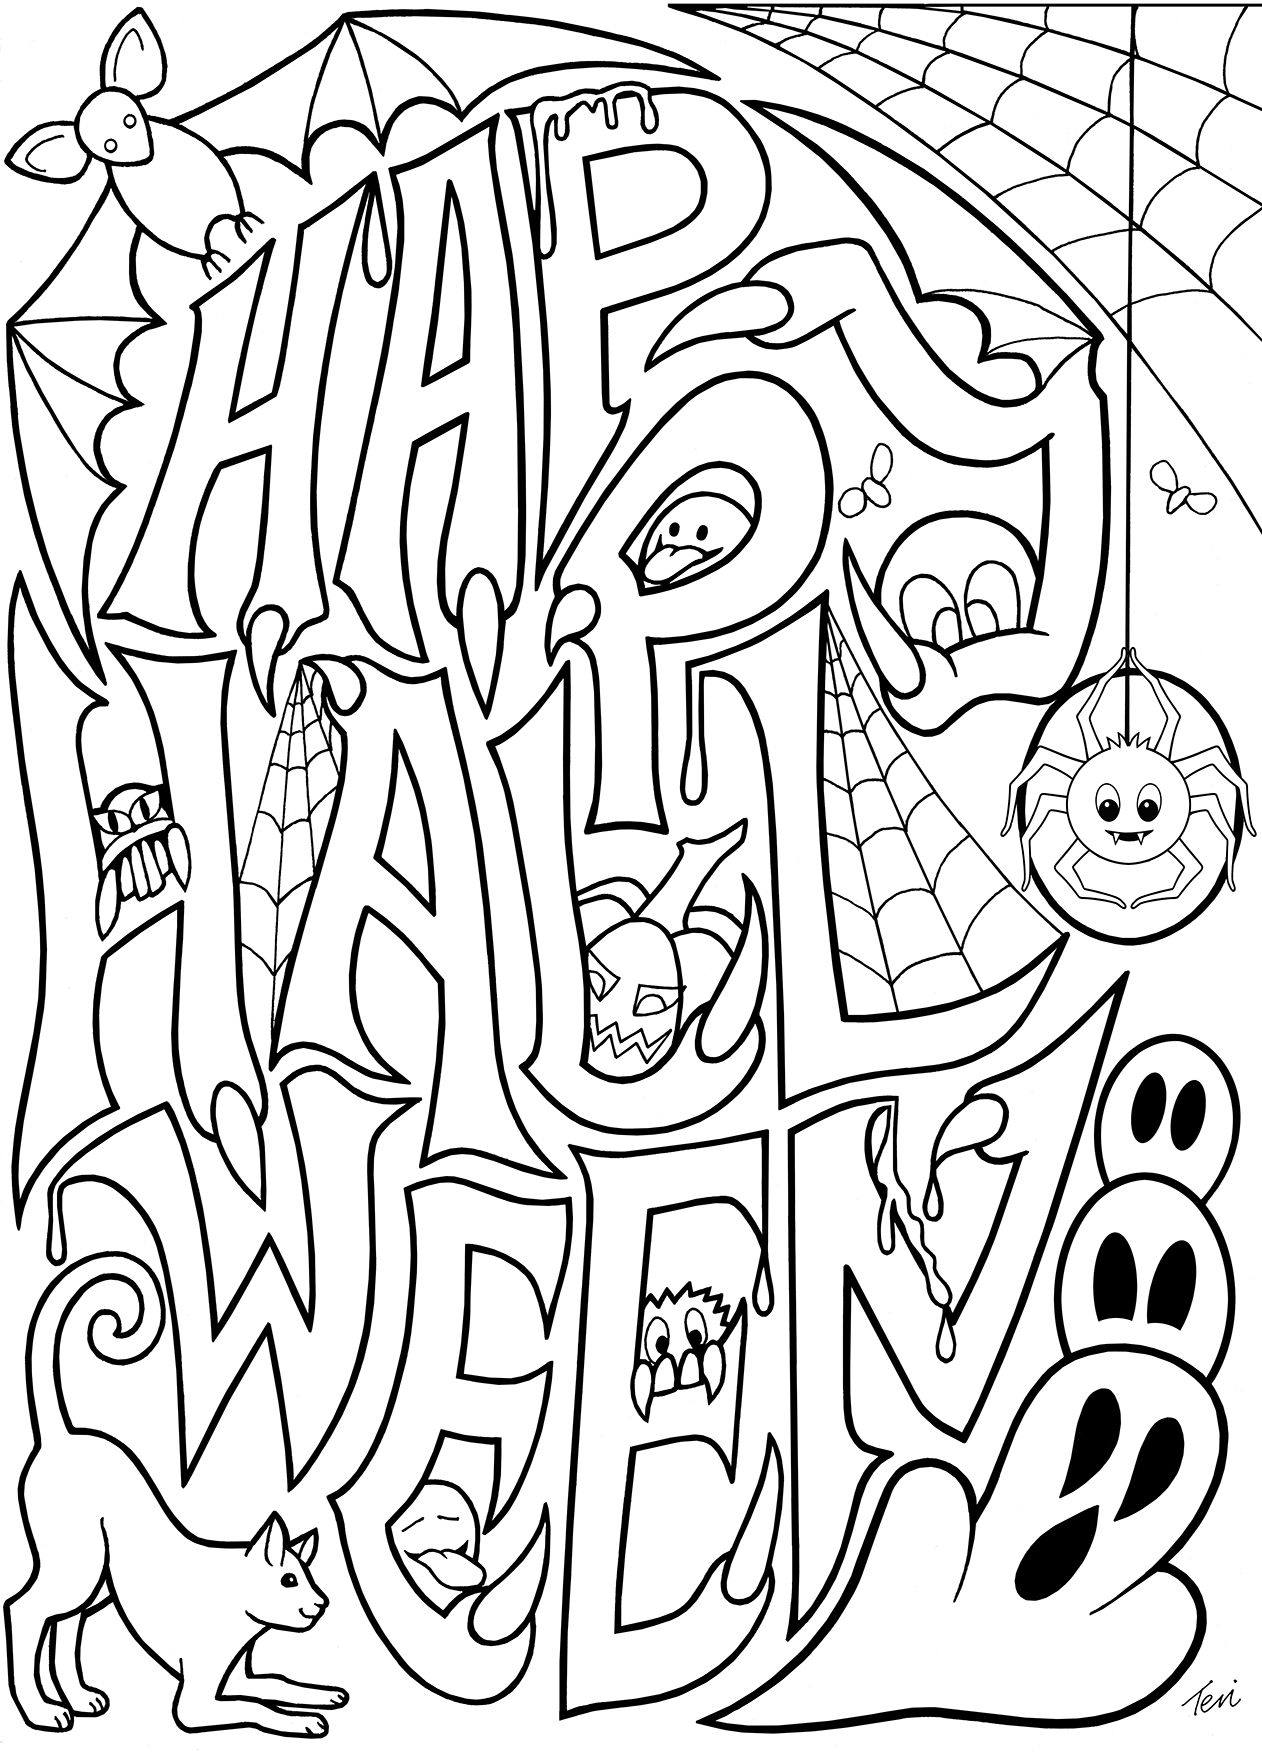 coloring halloween top 10 halloween coloring pages for kids to consider this coloring halloween